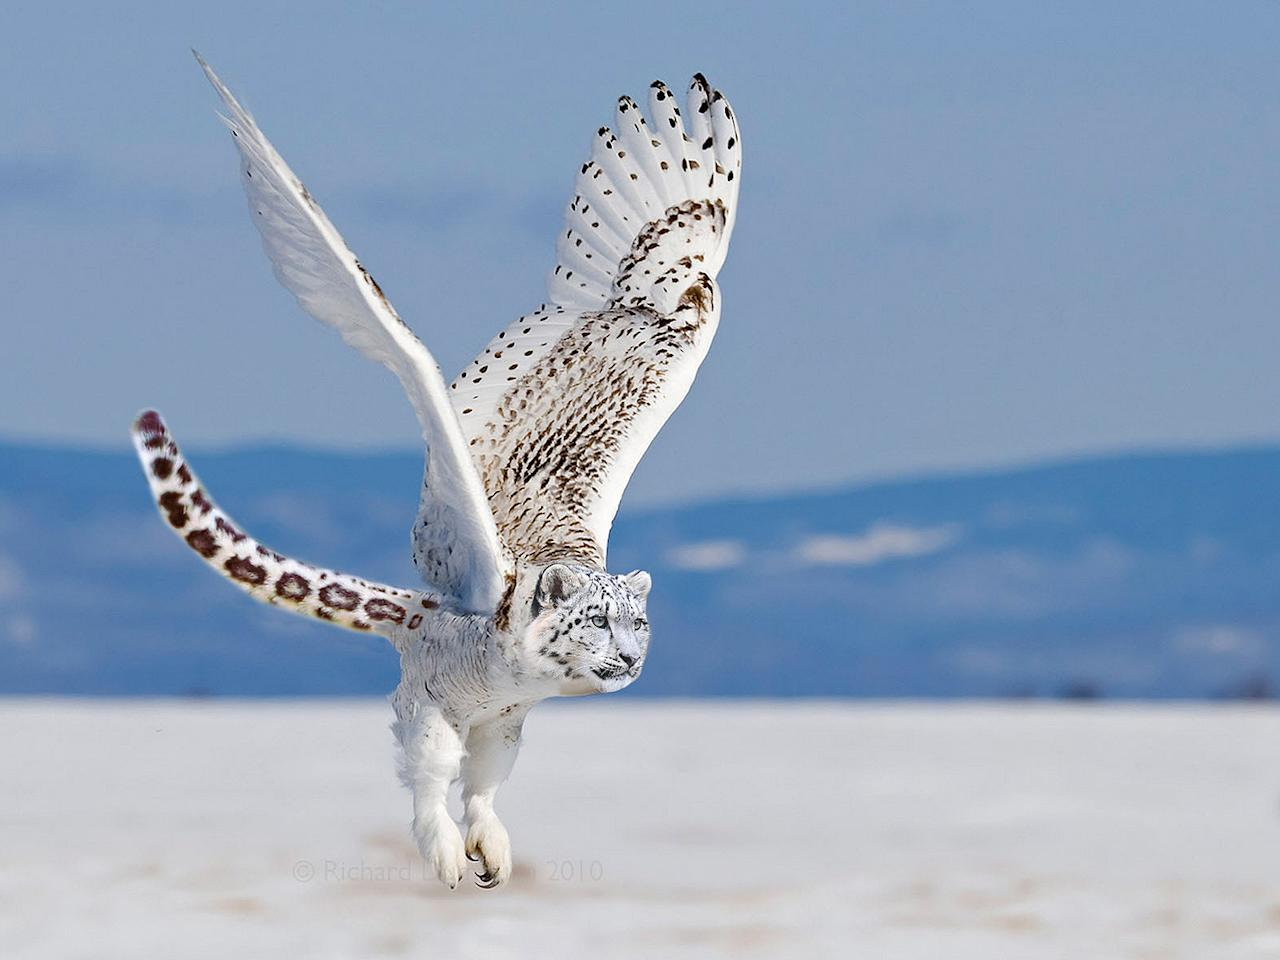 "The Snowy Owlpard. <a target=""_blank"" href=""http://i.imgur.com/VI9Jhll.jpg"">Photo</a> created by <a href=""http://www.reddit.com/user/mobuco"">mobuco</a>."